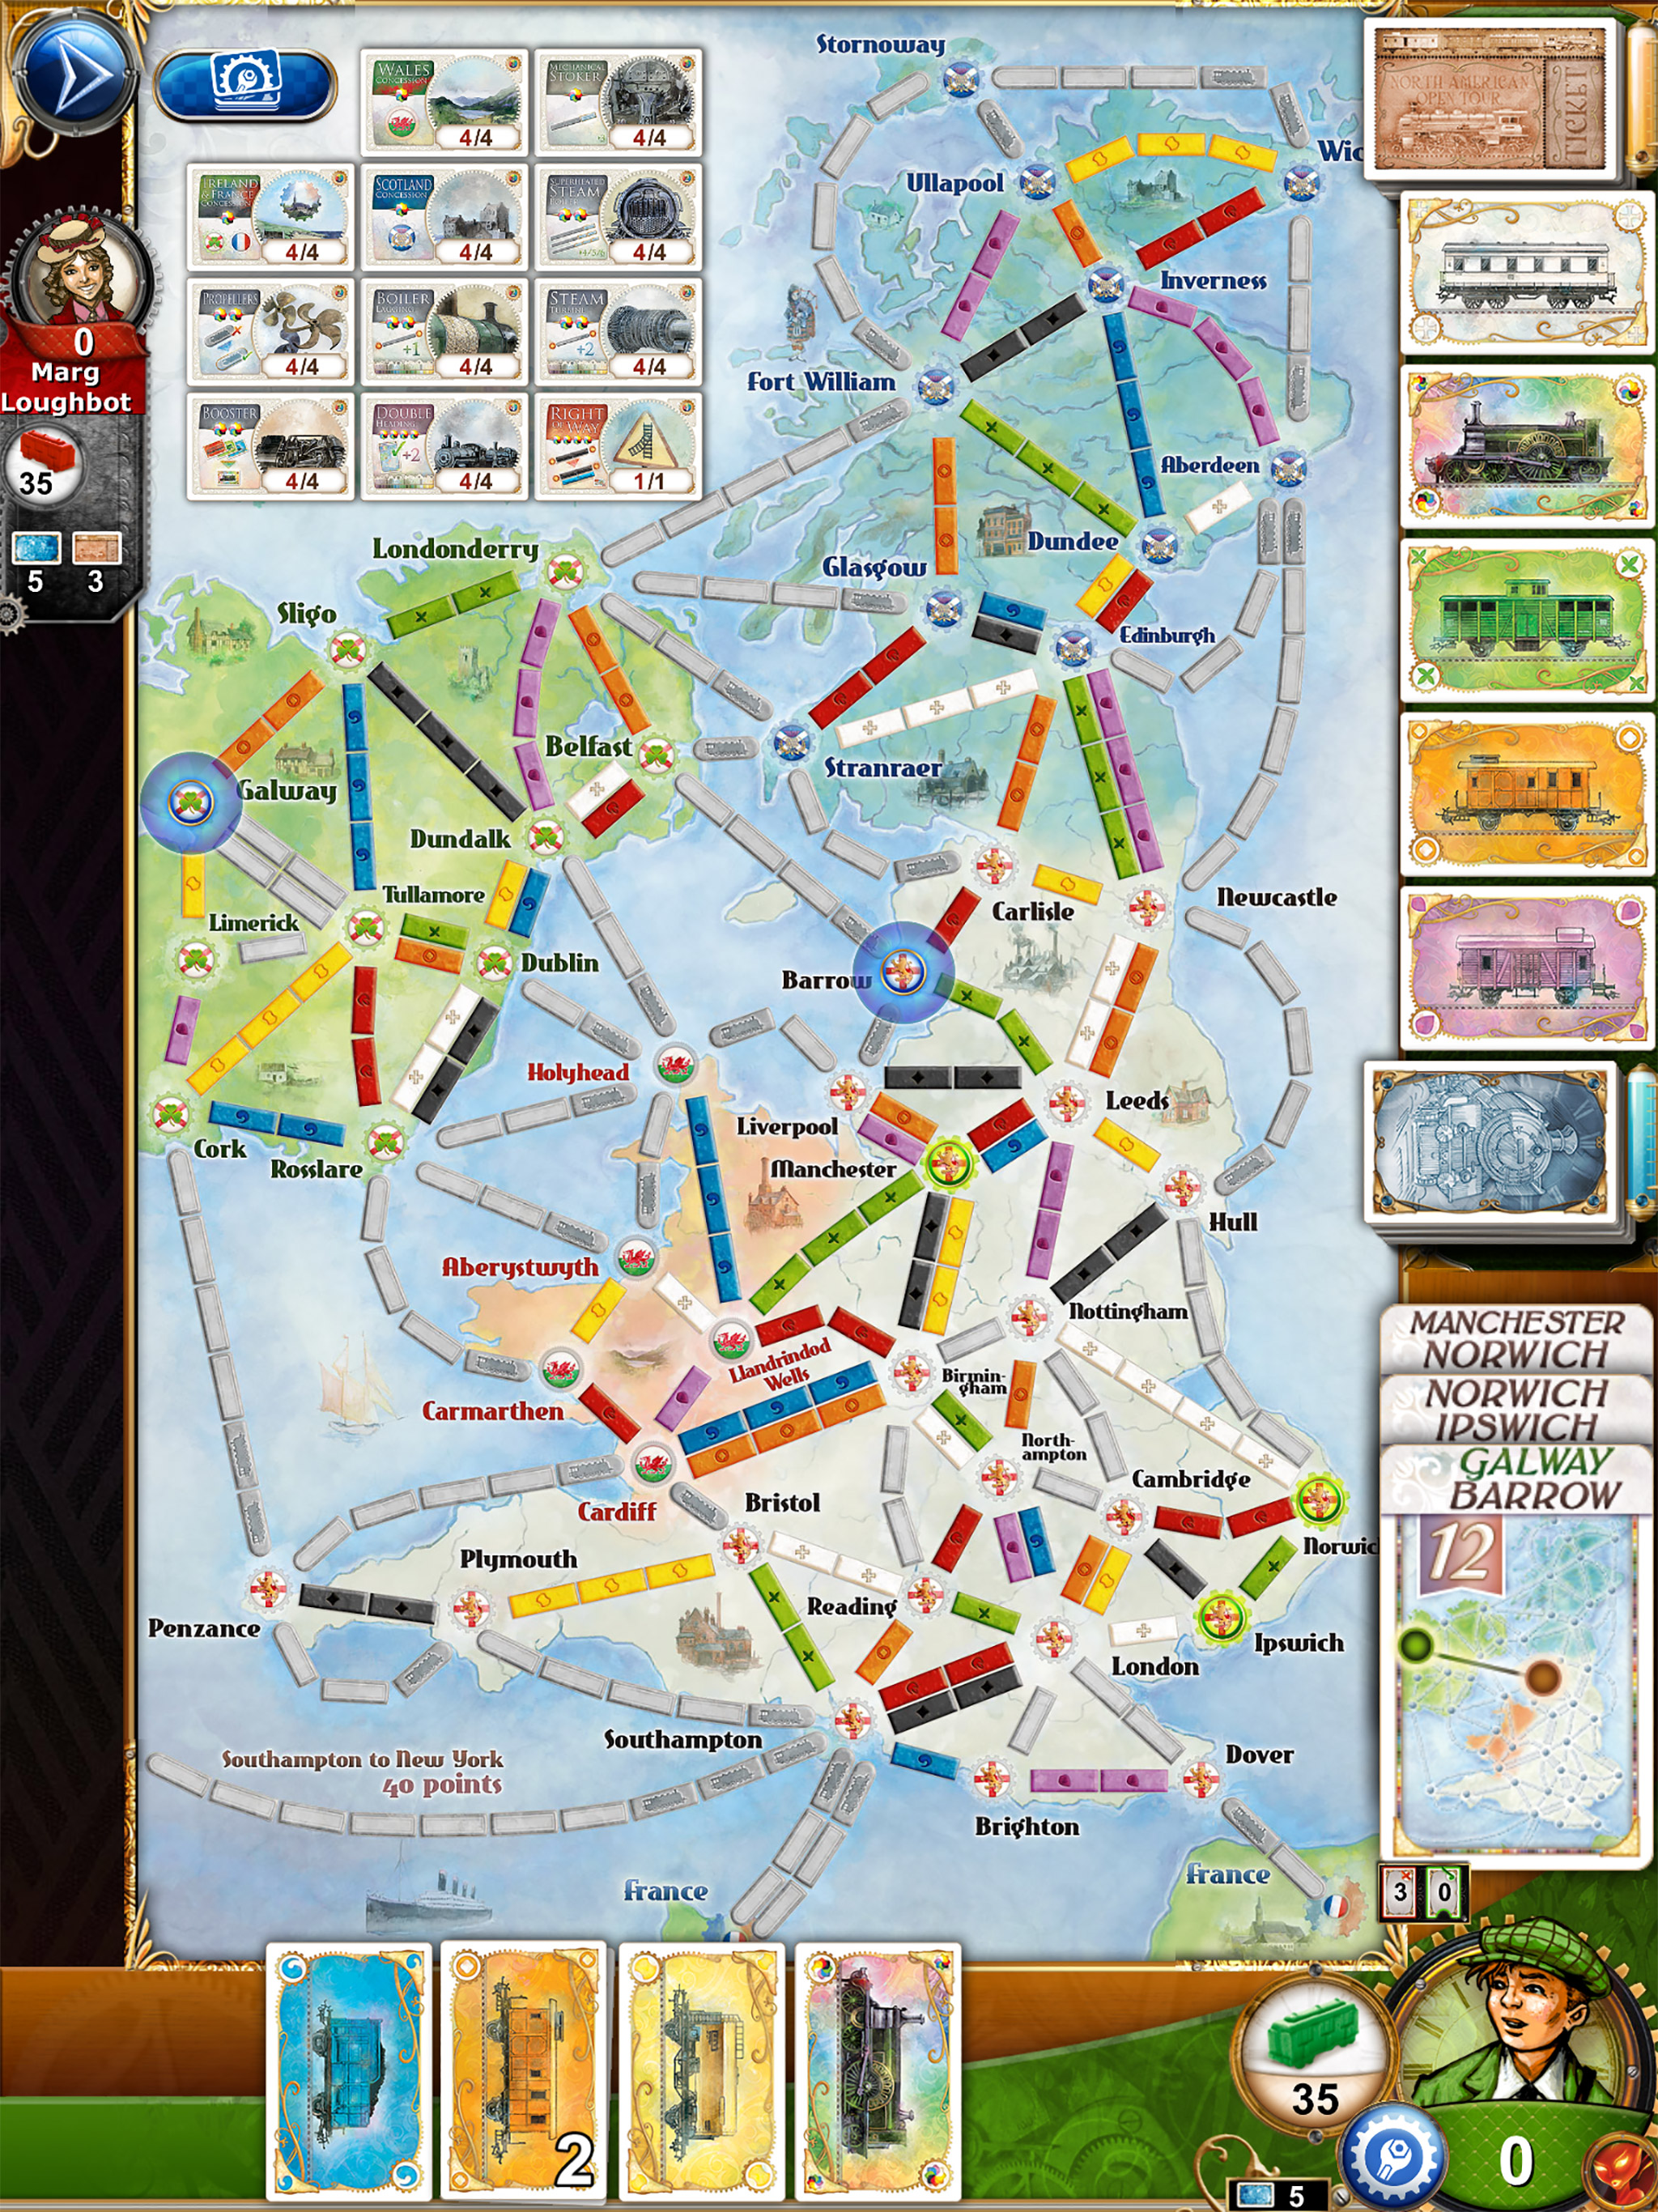 Missed our Ticket to Ride stream last night? Well you can catch up right here